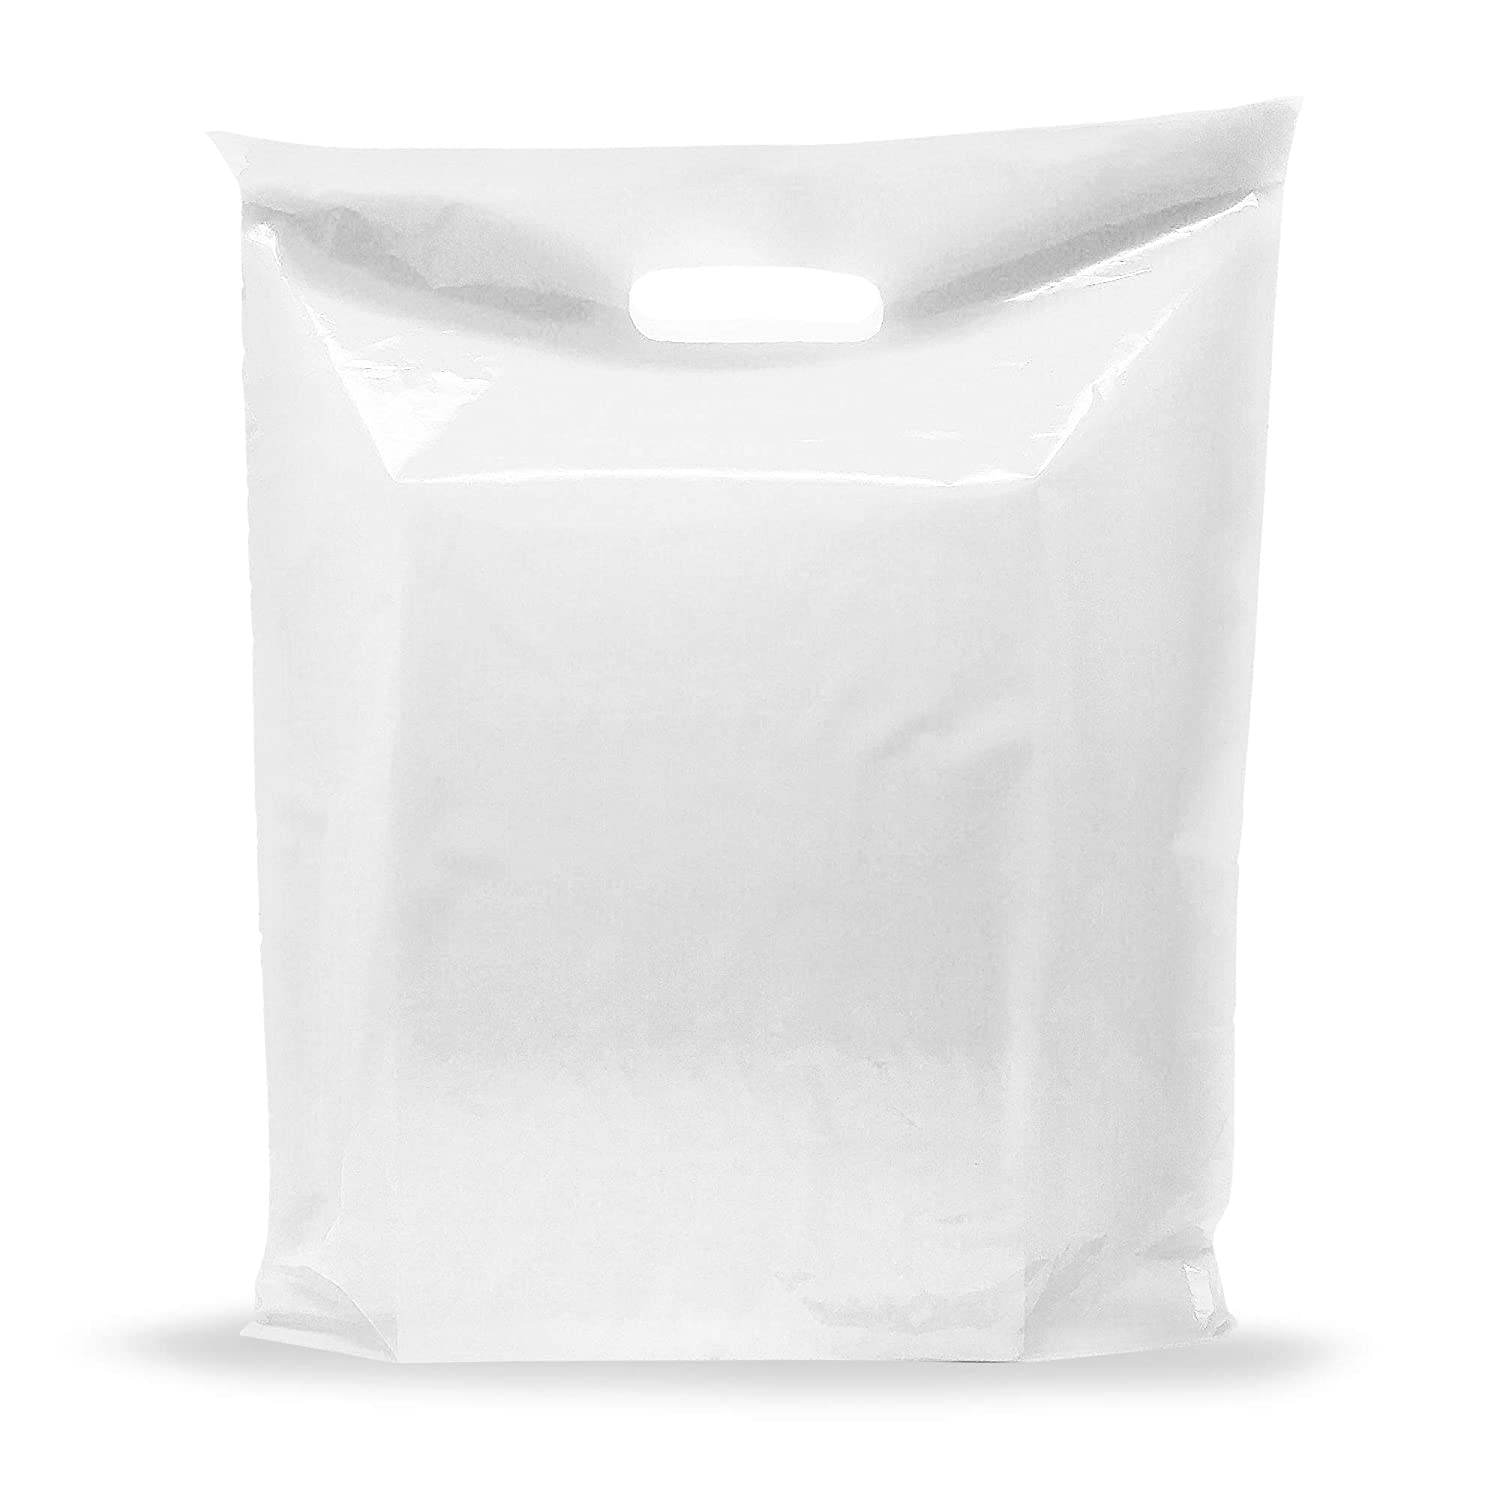 Extra Large White Merchandise Now free 2021 autumn and winter new shipping Bags Perfect Glossy - Plastic for